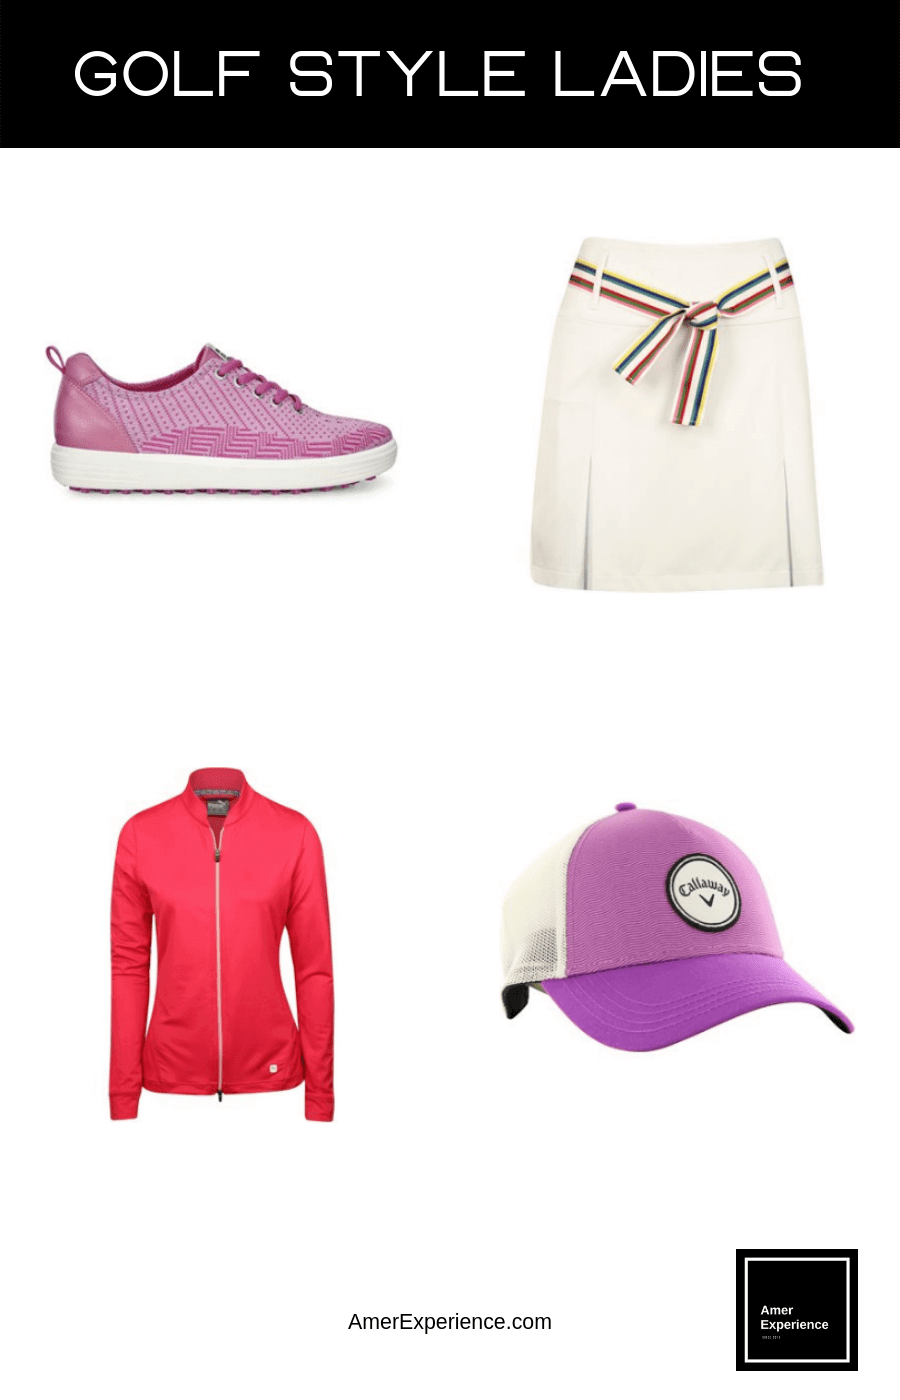 Golf Style Ladies Outfits - Golf Pro Shop Online